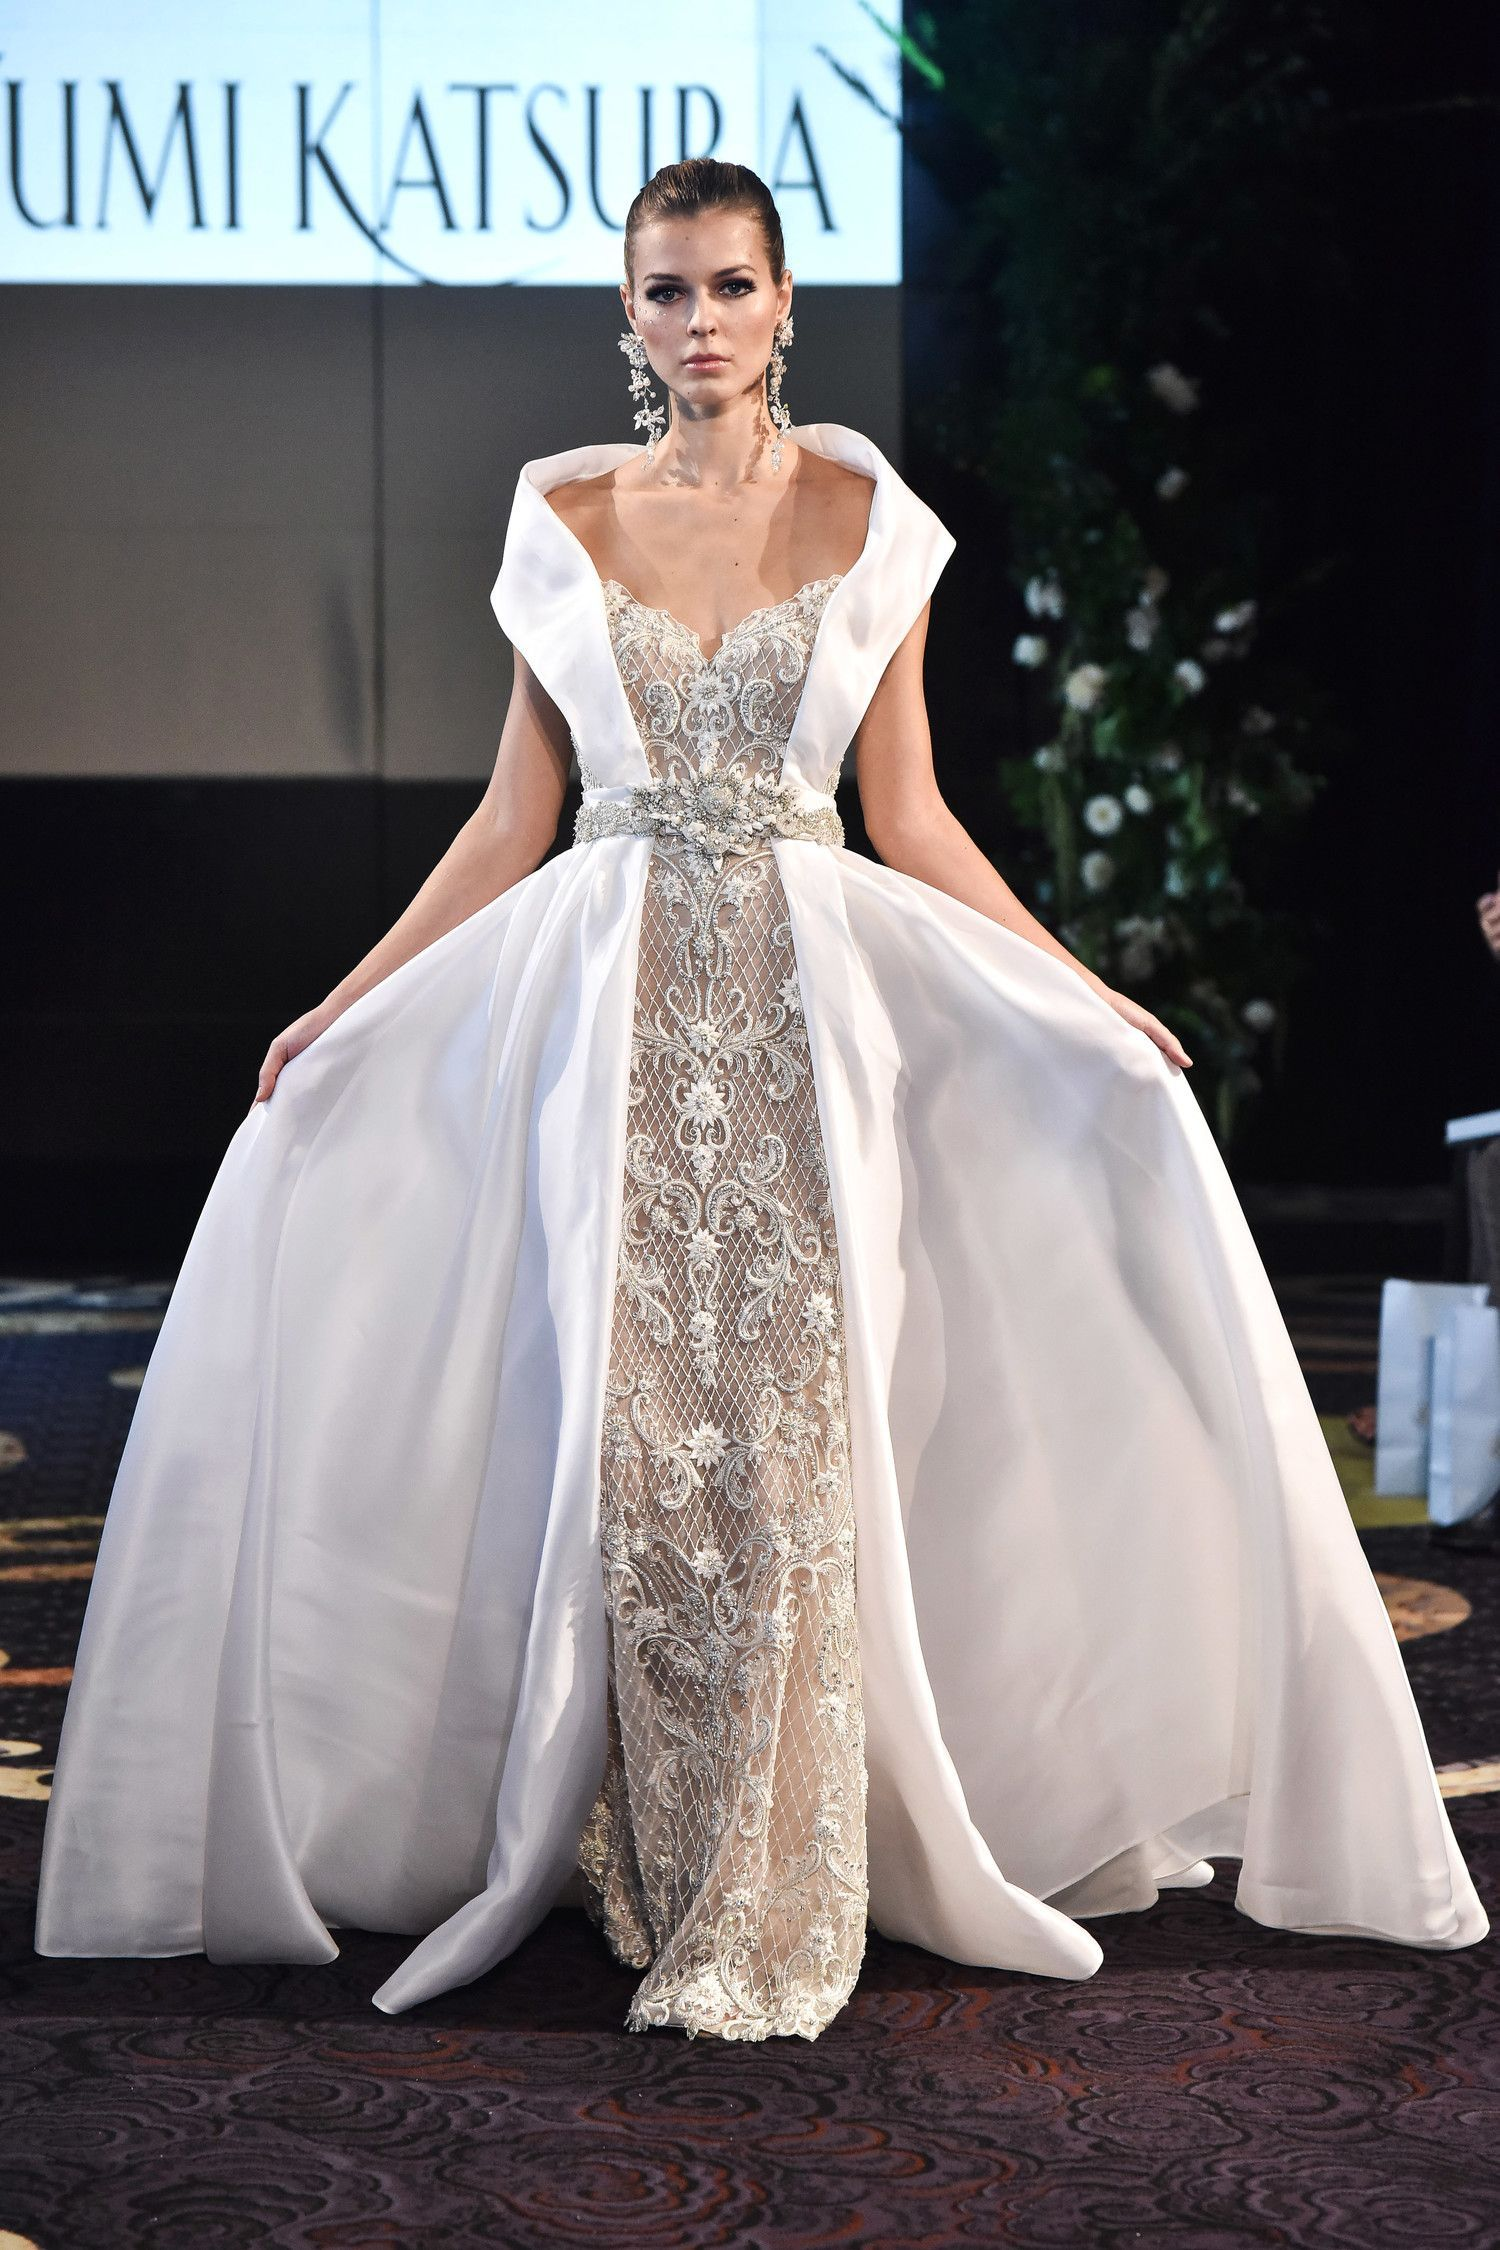 Top 10 Most Expensive Wedding Dress Designers in 2019